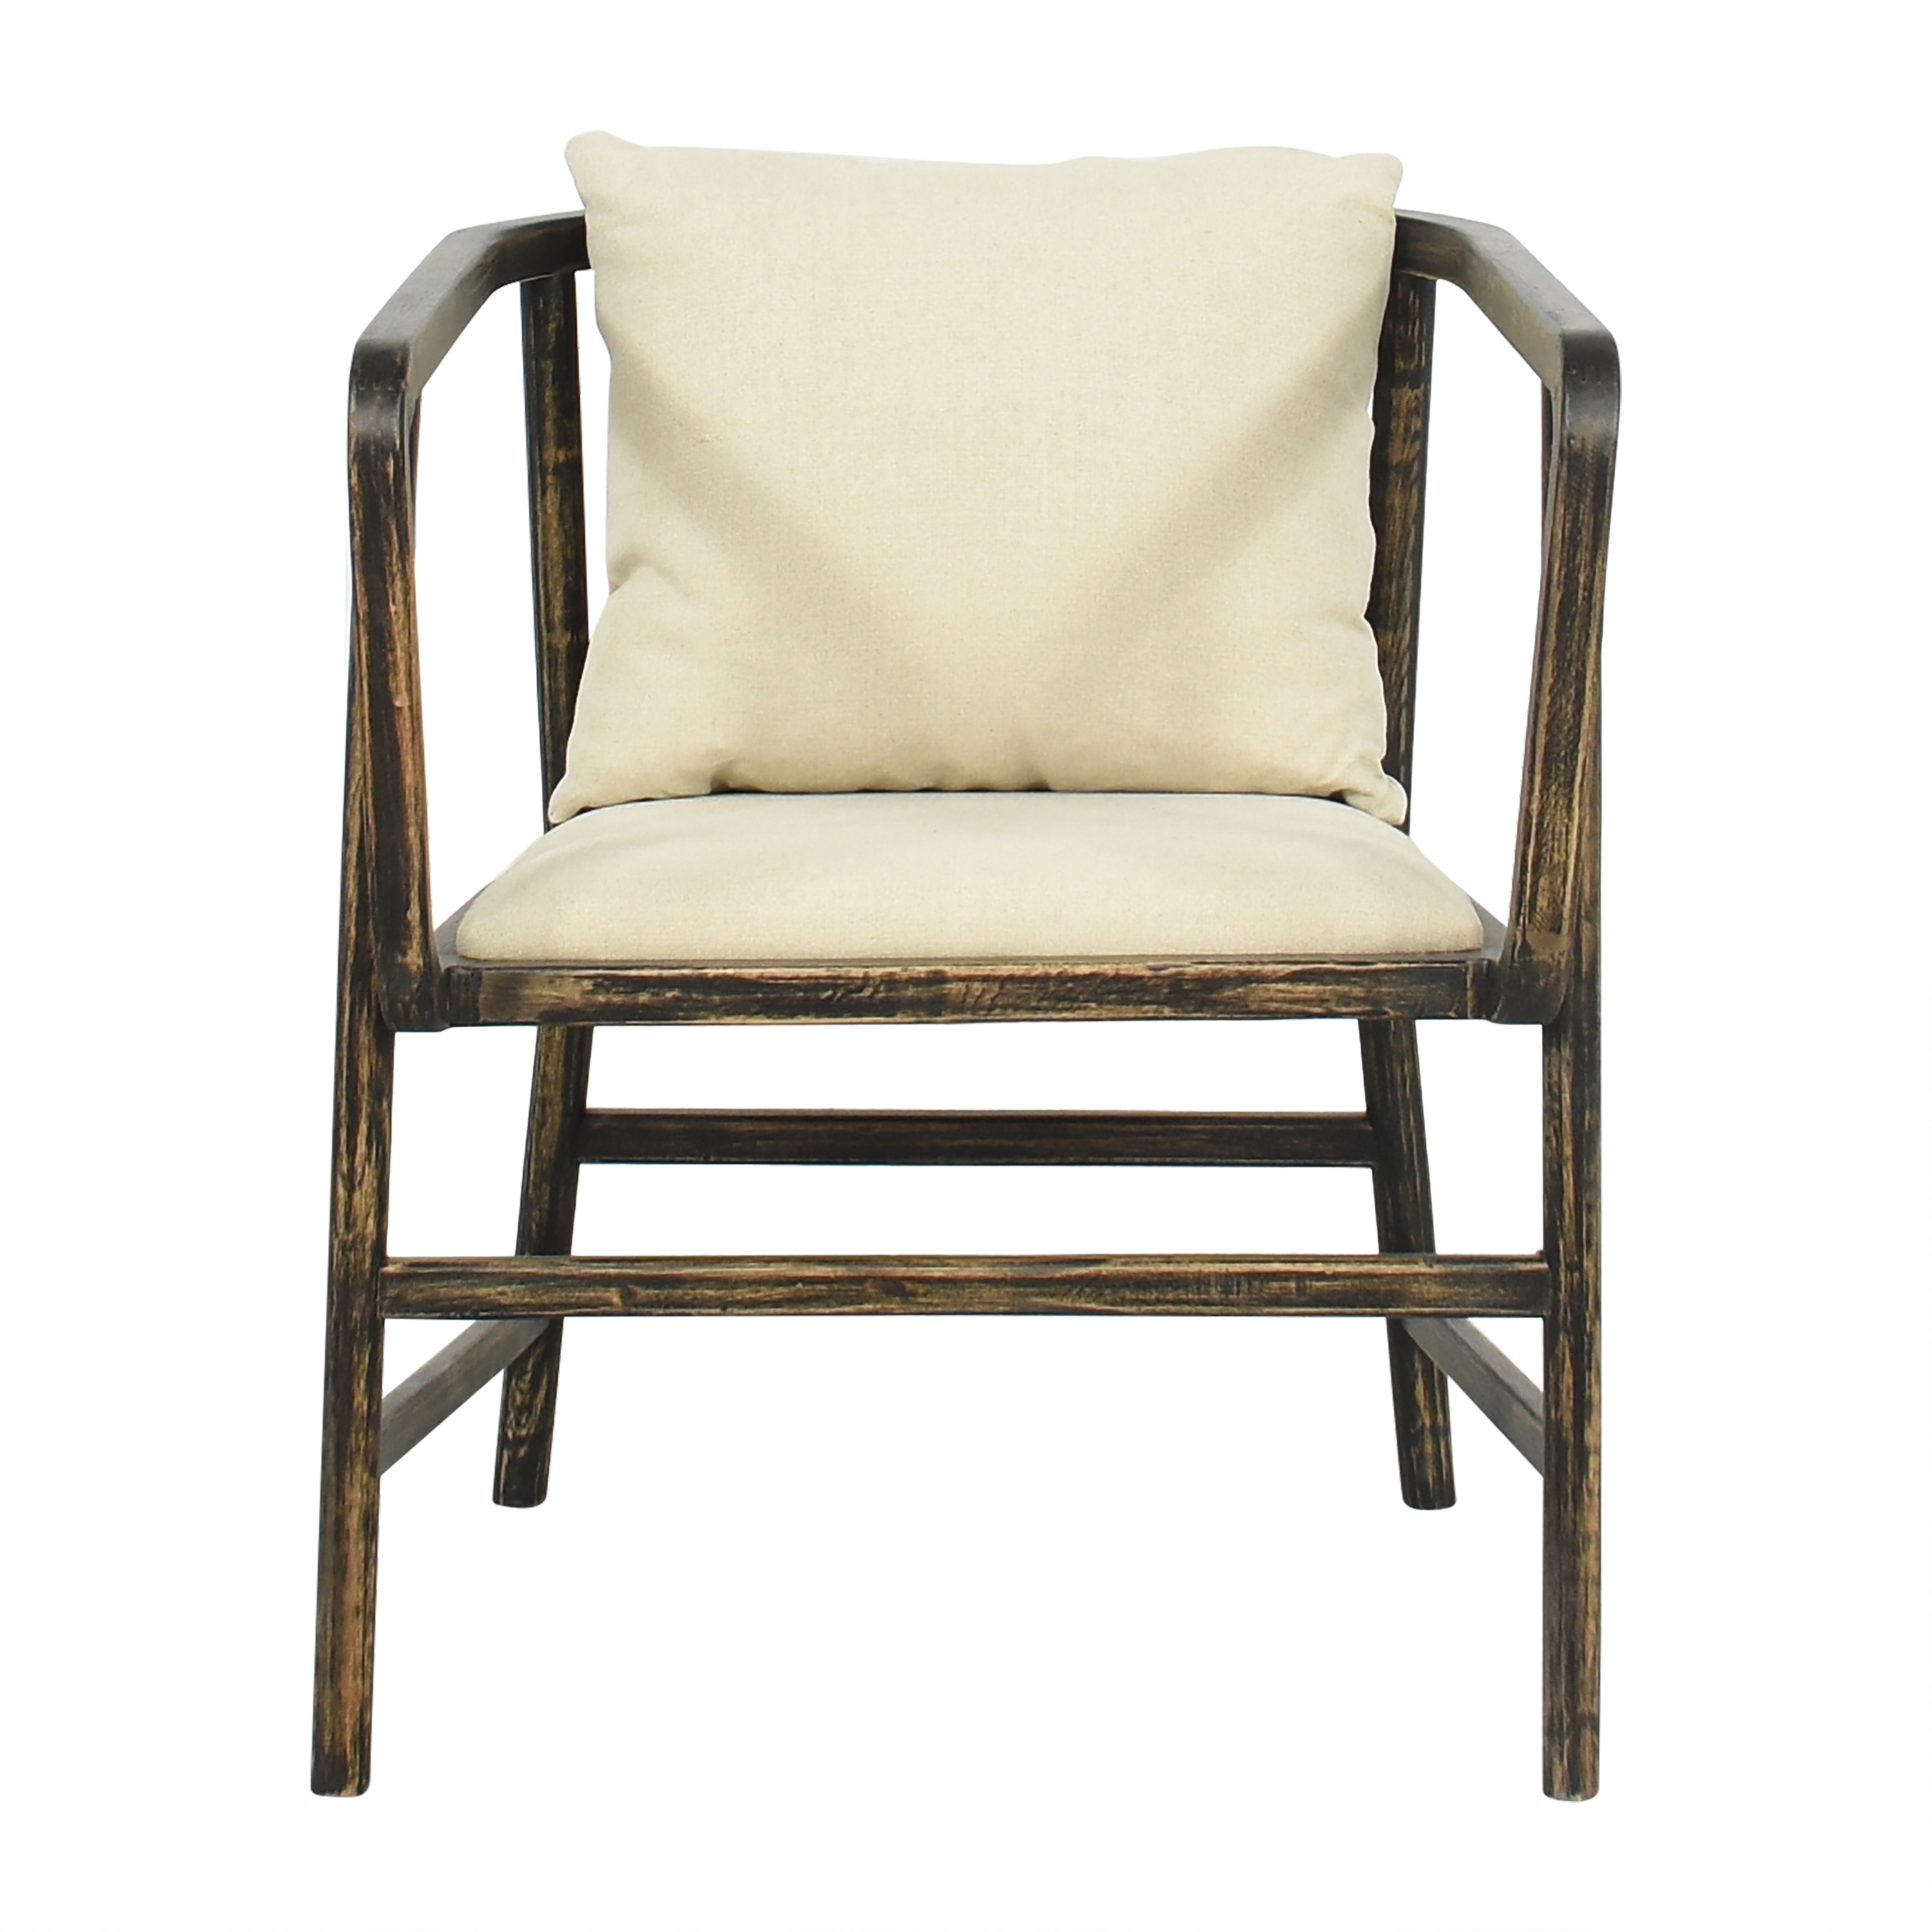 Four Hands Four Hands Frasier Lounge Chair used